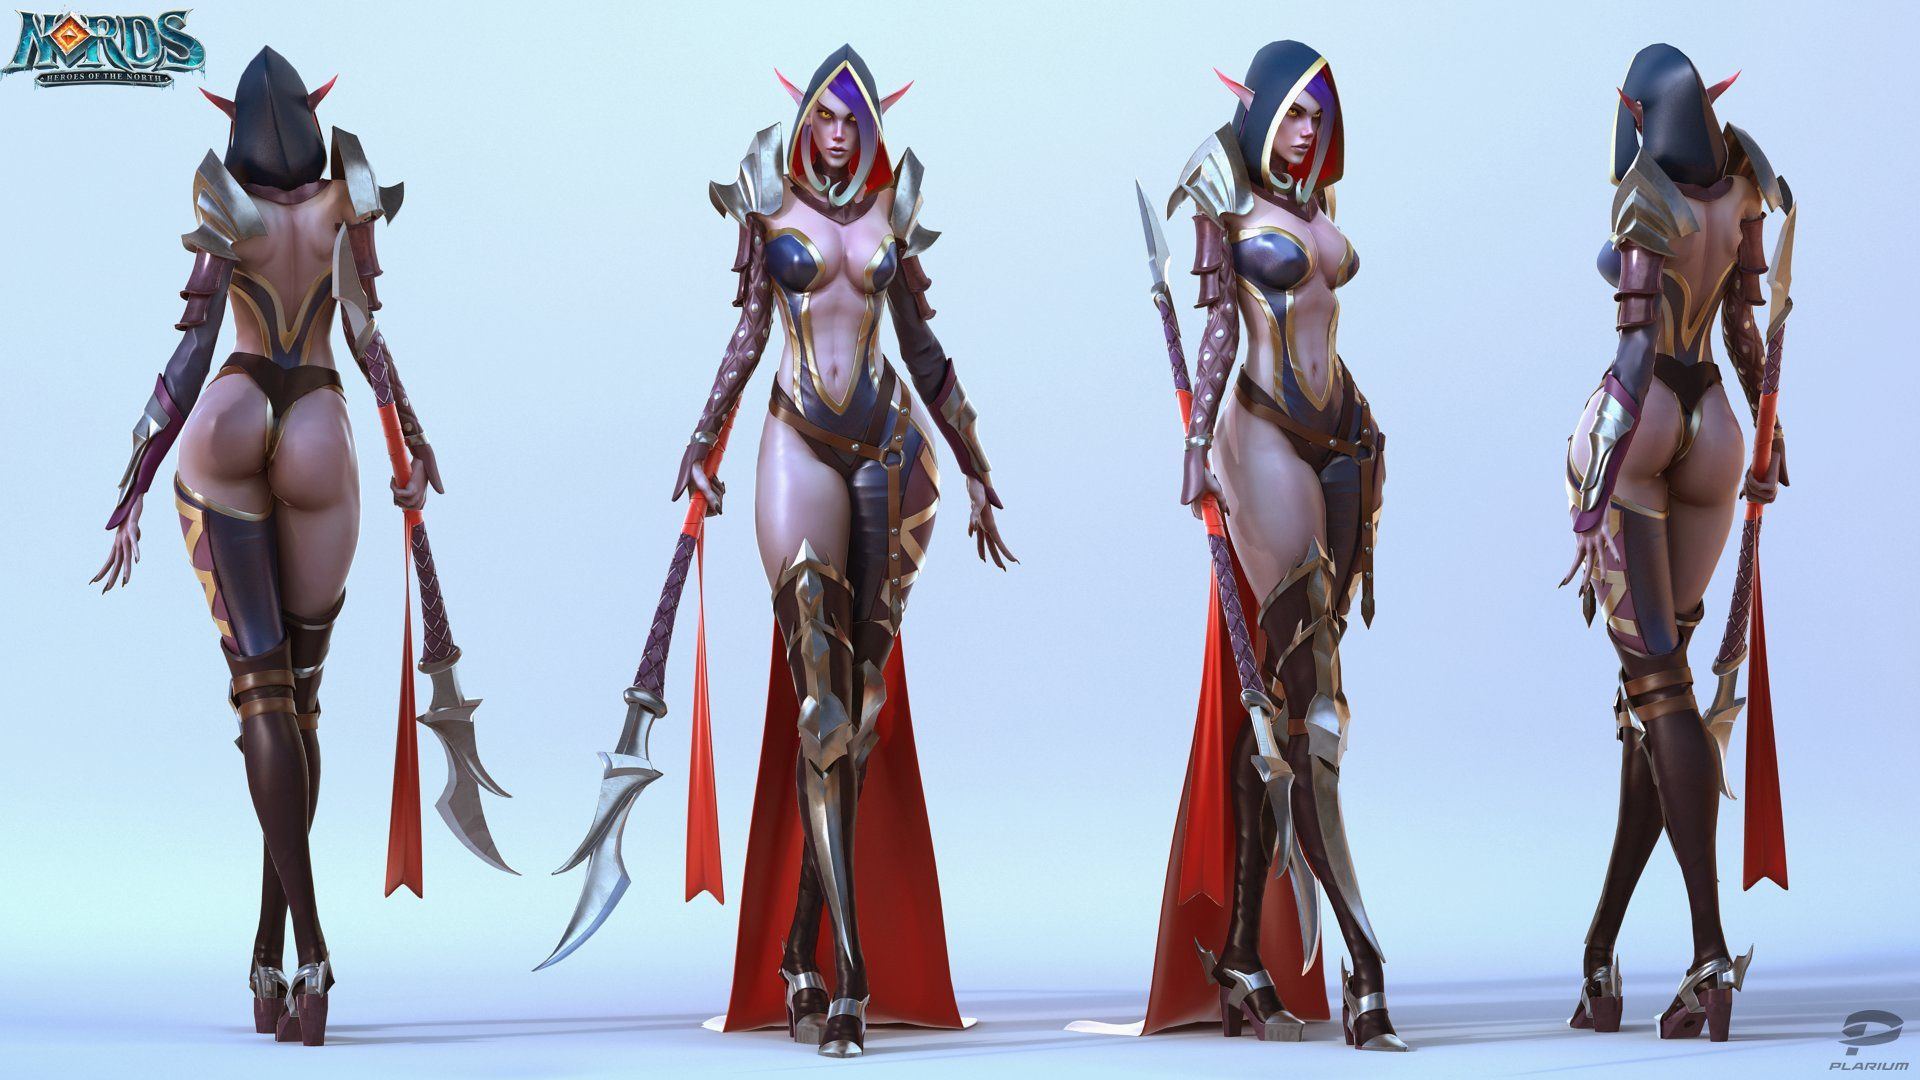 Female video game characters naked